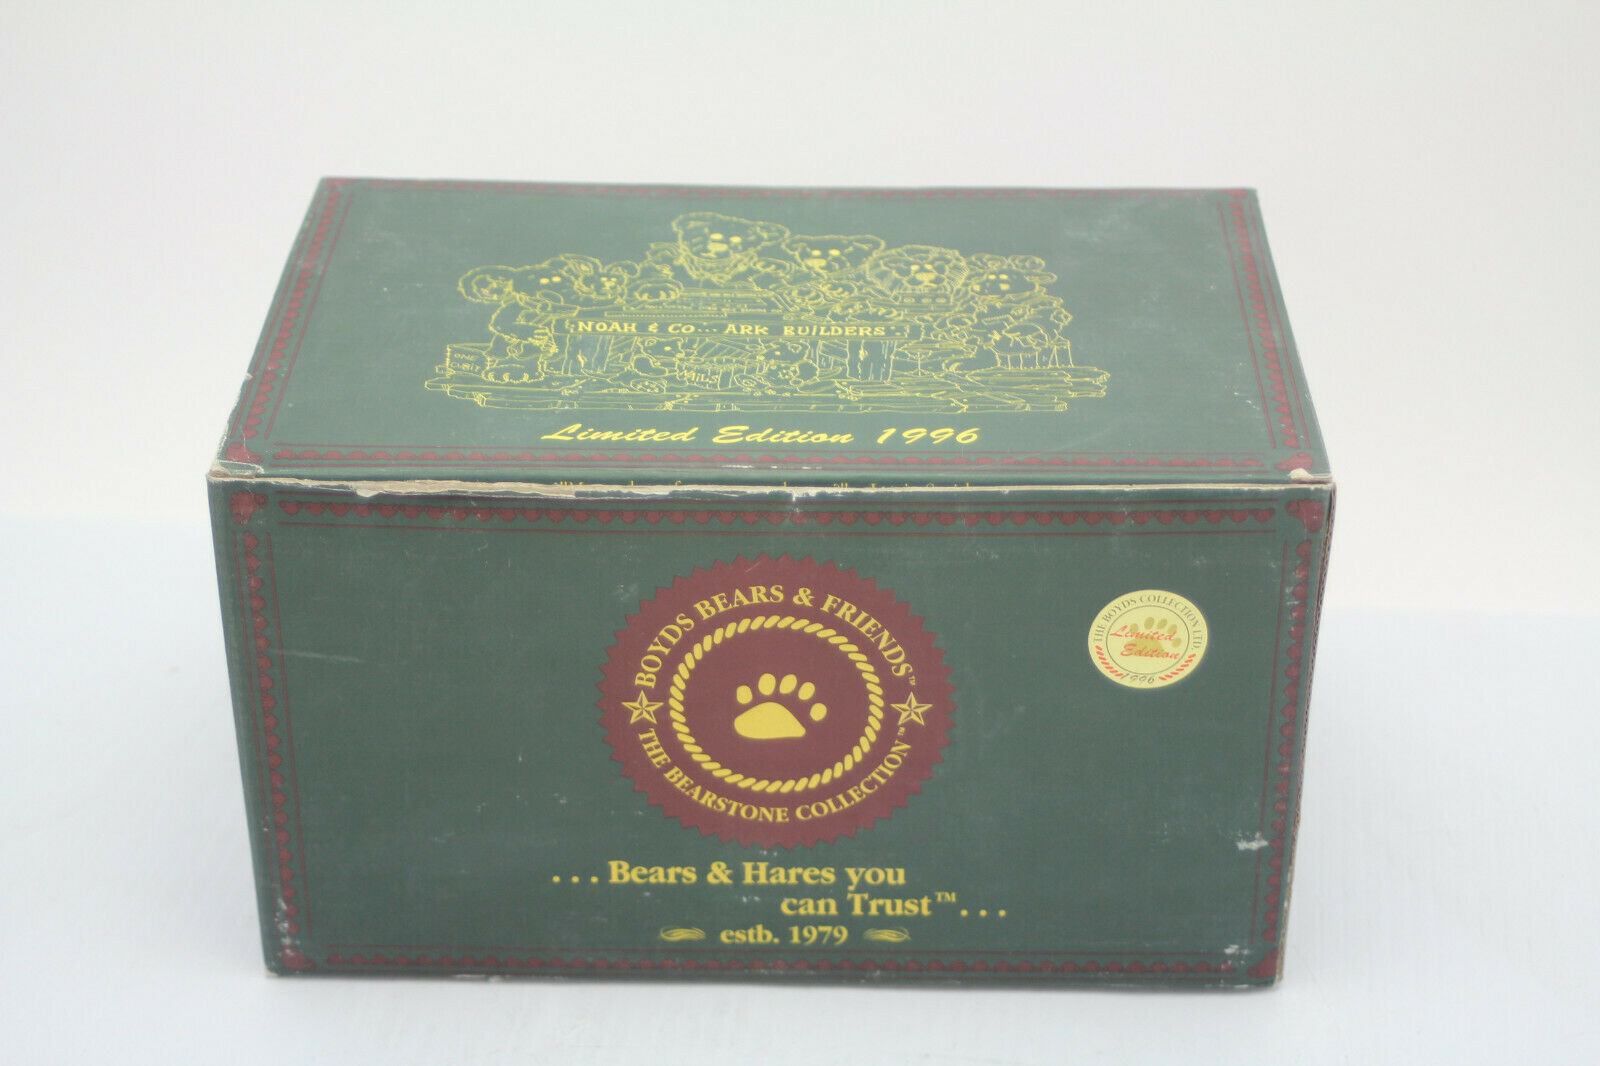 The Boyds Collection Noah & Co. Ark Builders Limited Edition 1996 image 9